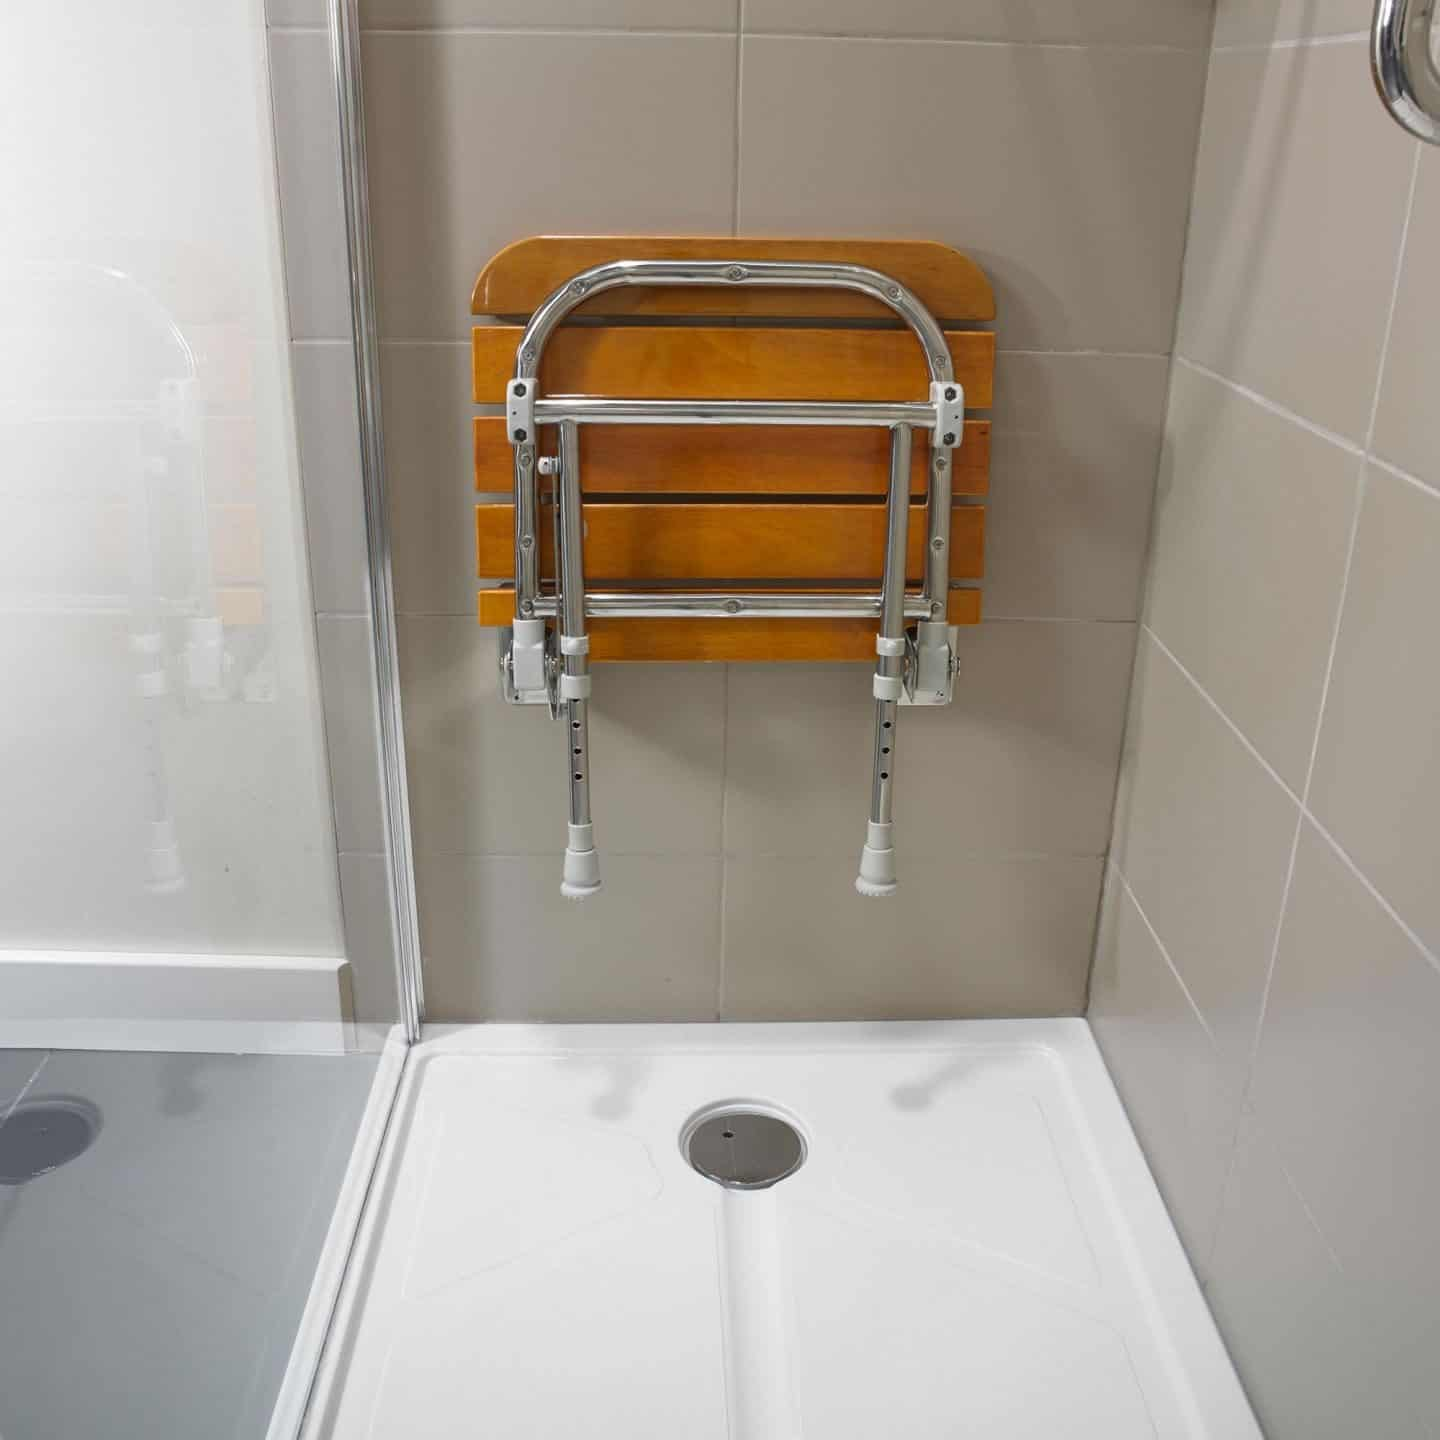 Accessible bathroom design from Premier Care Bathrooms. A shower seat is useful for people with balance or mobility issues.